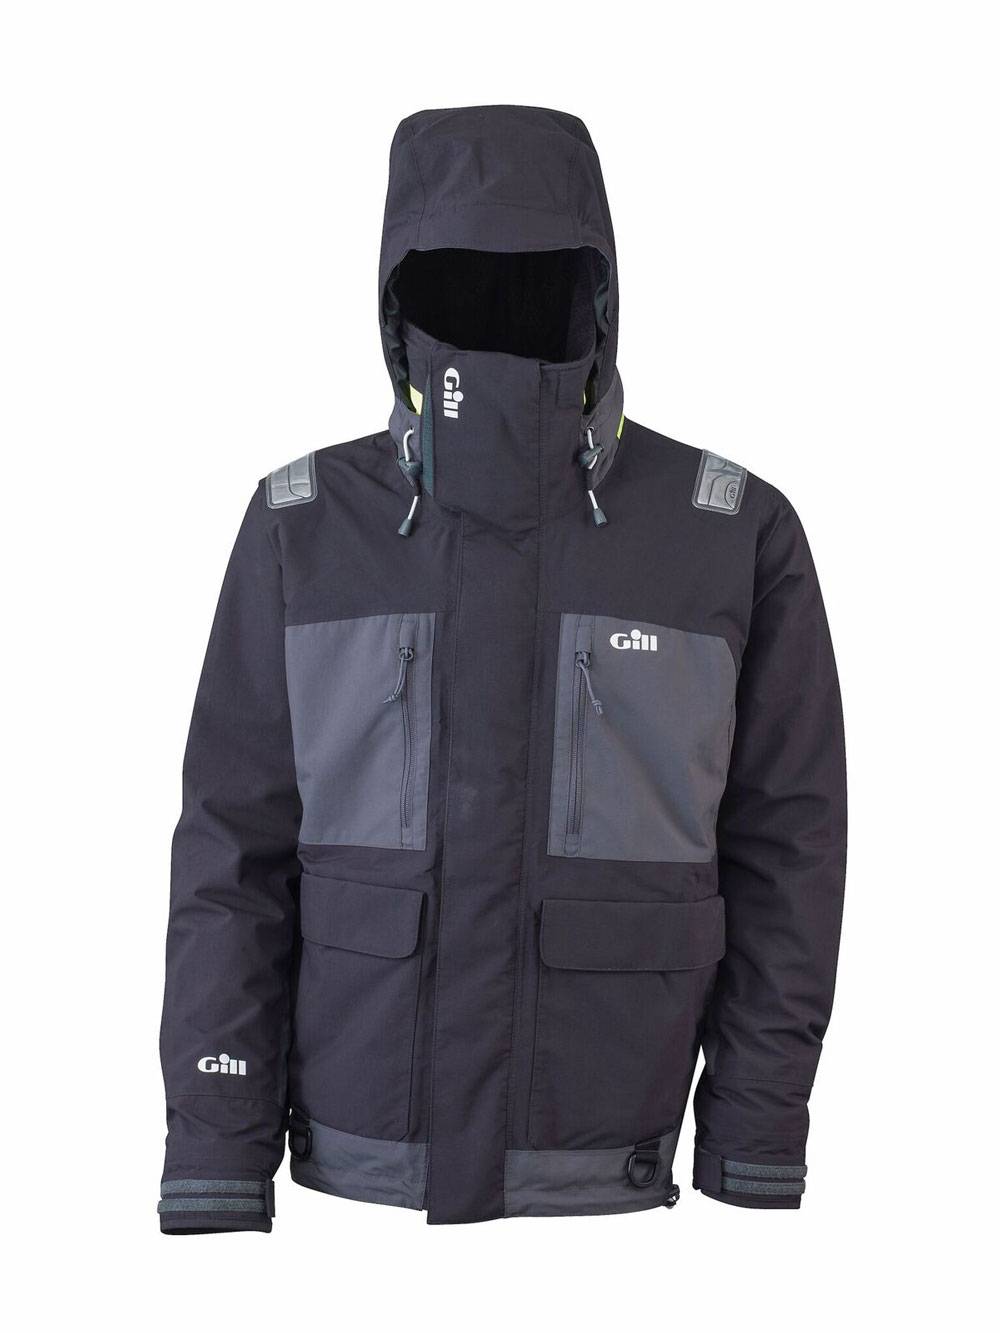 7eda513e542 Ready for a new rain jacket  The Gill FG2 Tournament is one you need to